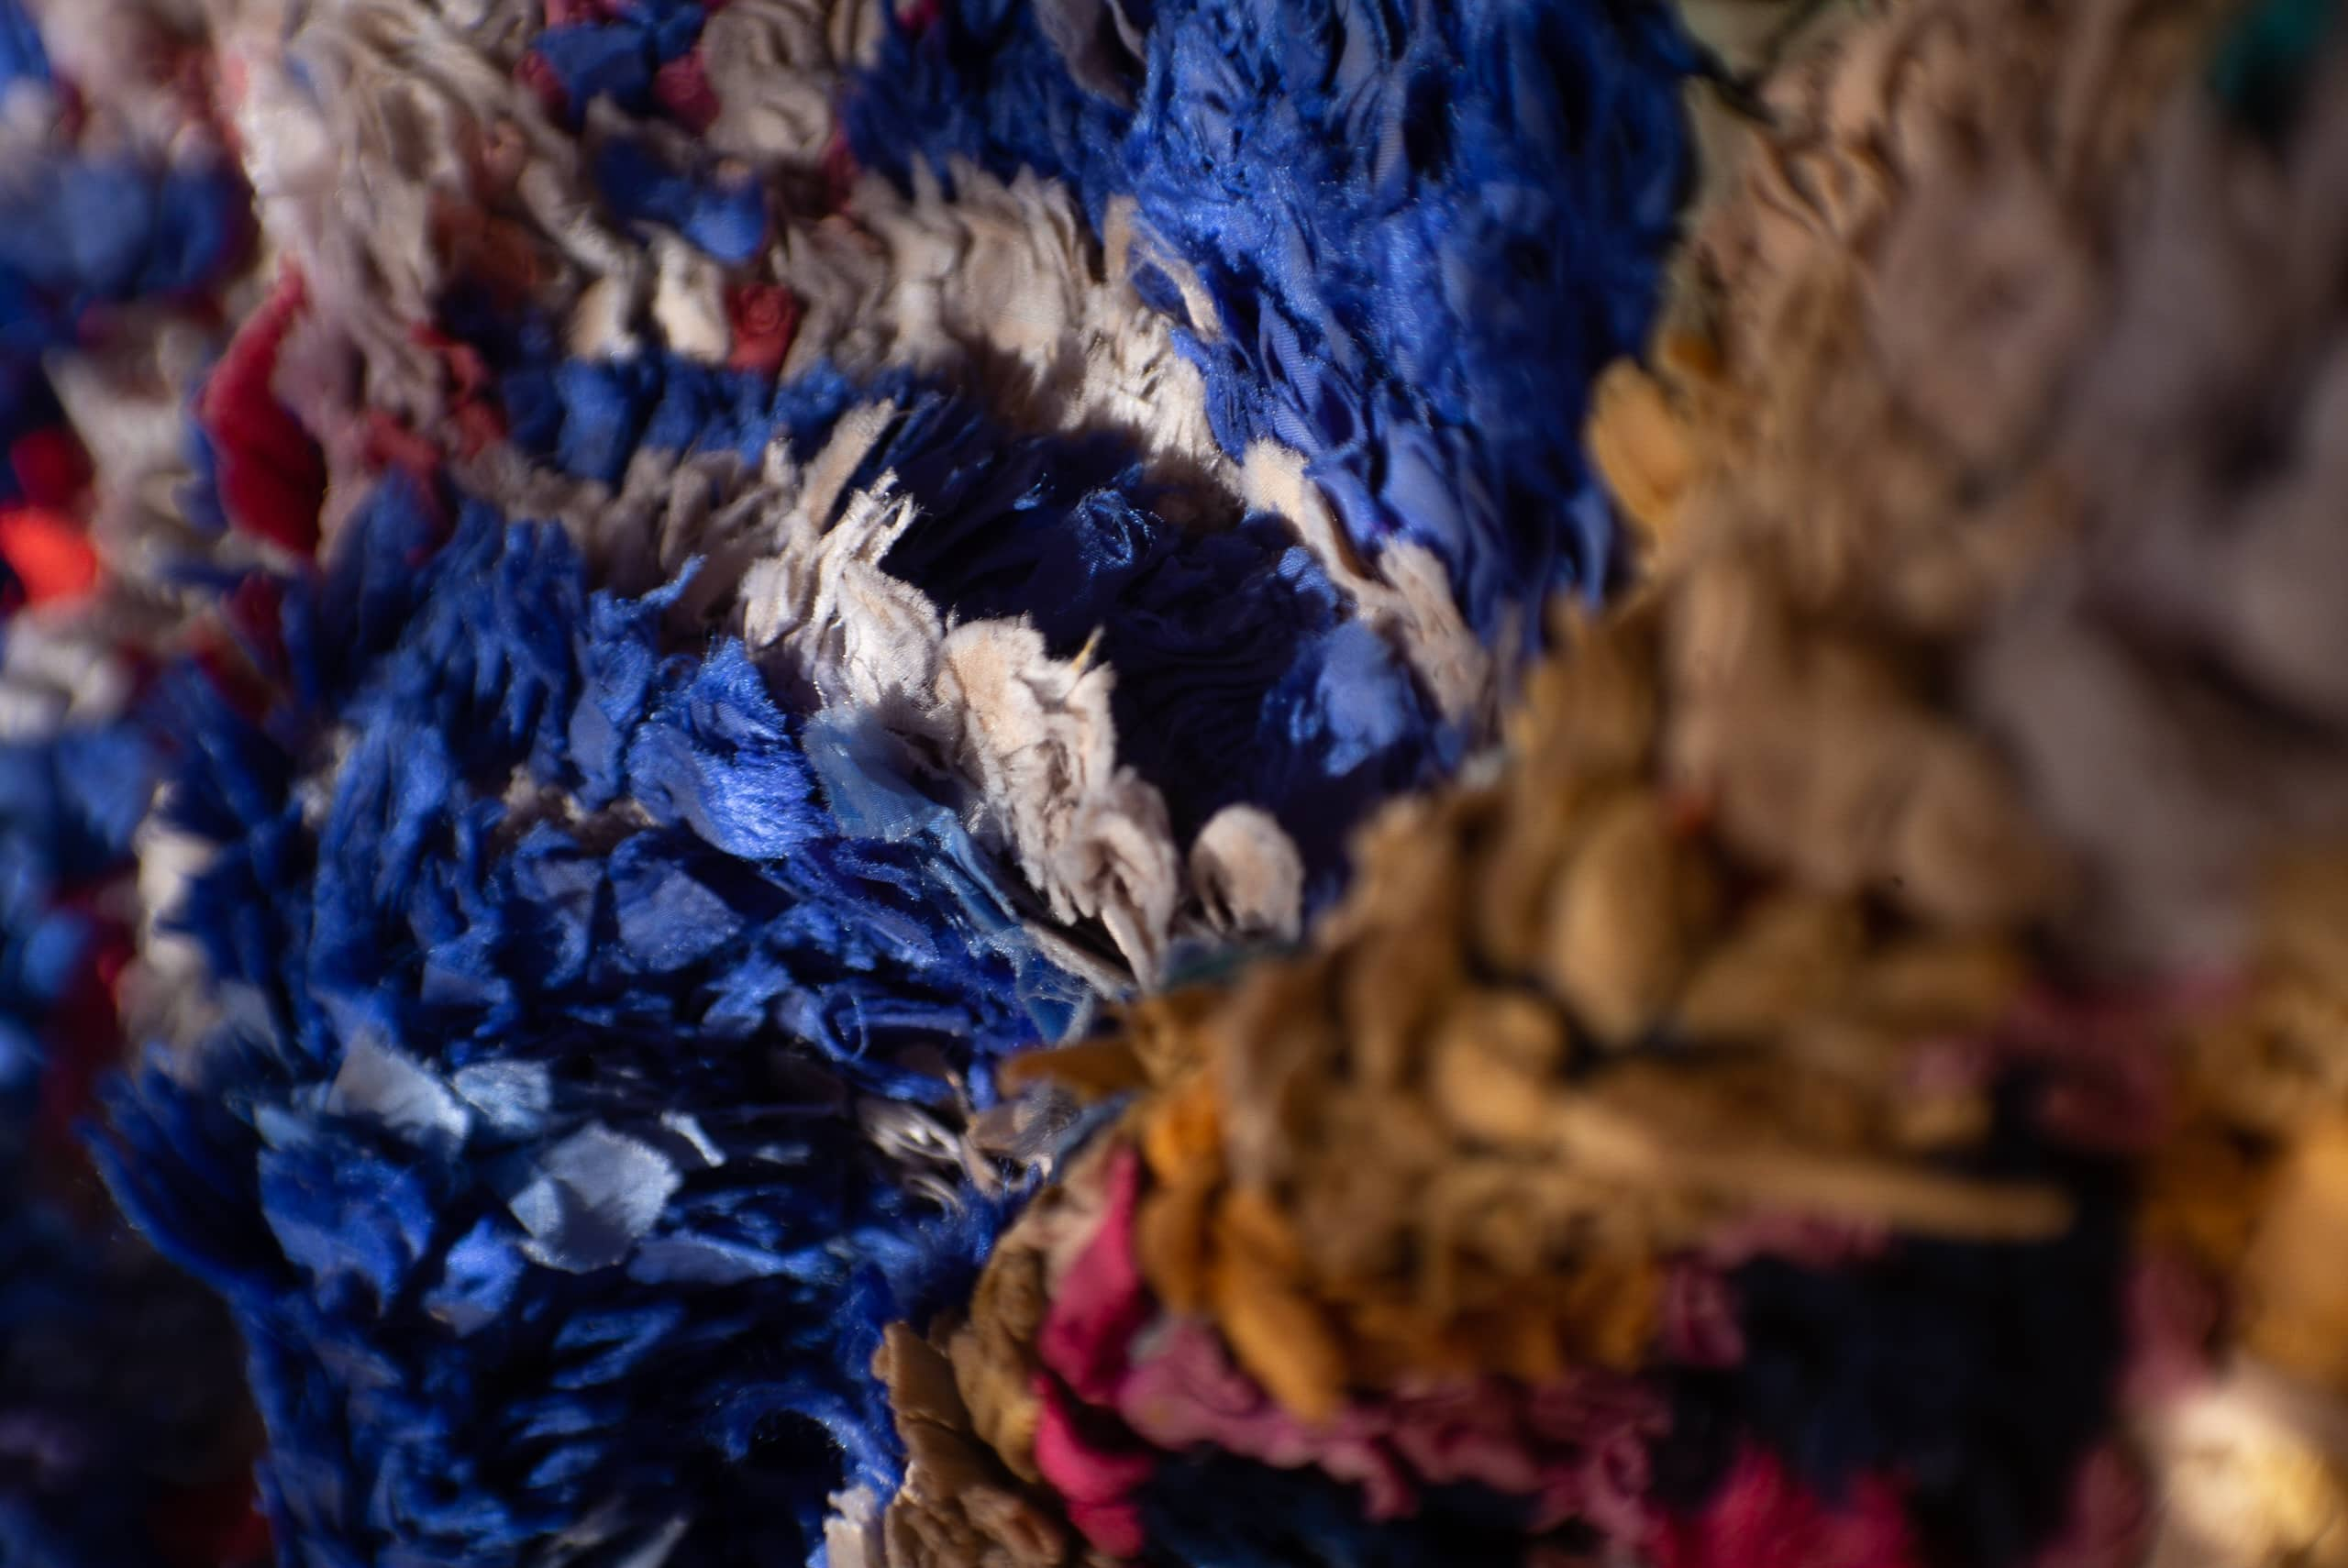 /img/pages/atlas-weavers/2/Close_up_of_a_Boucherouite_or_'scrap'_rug_made_out_of_leftover_fabric.jpg